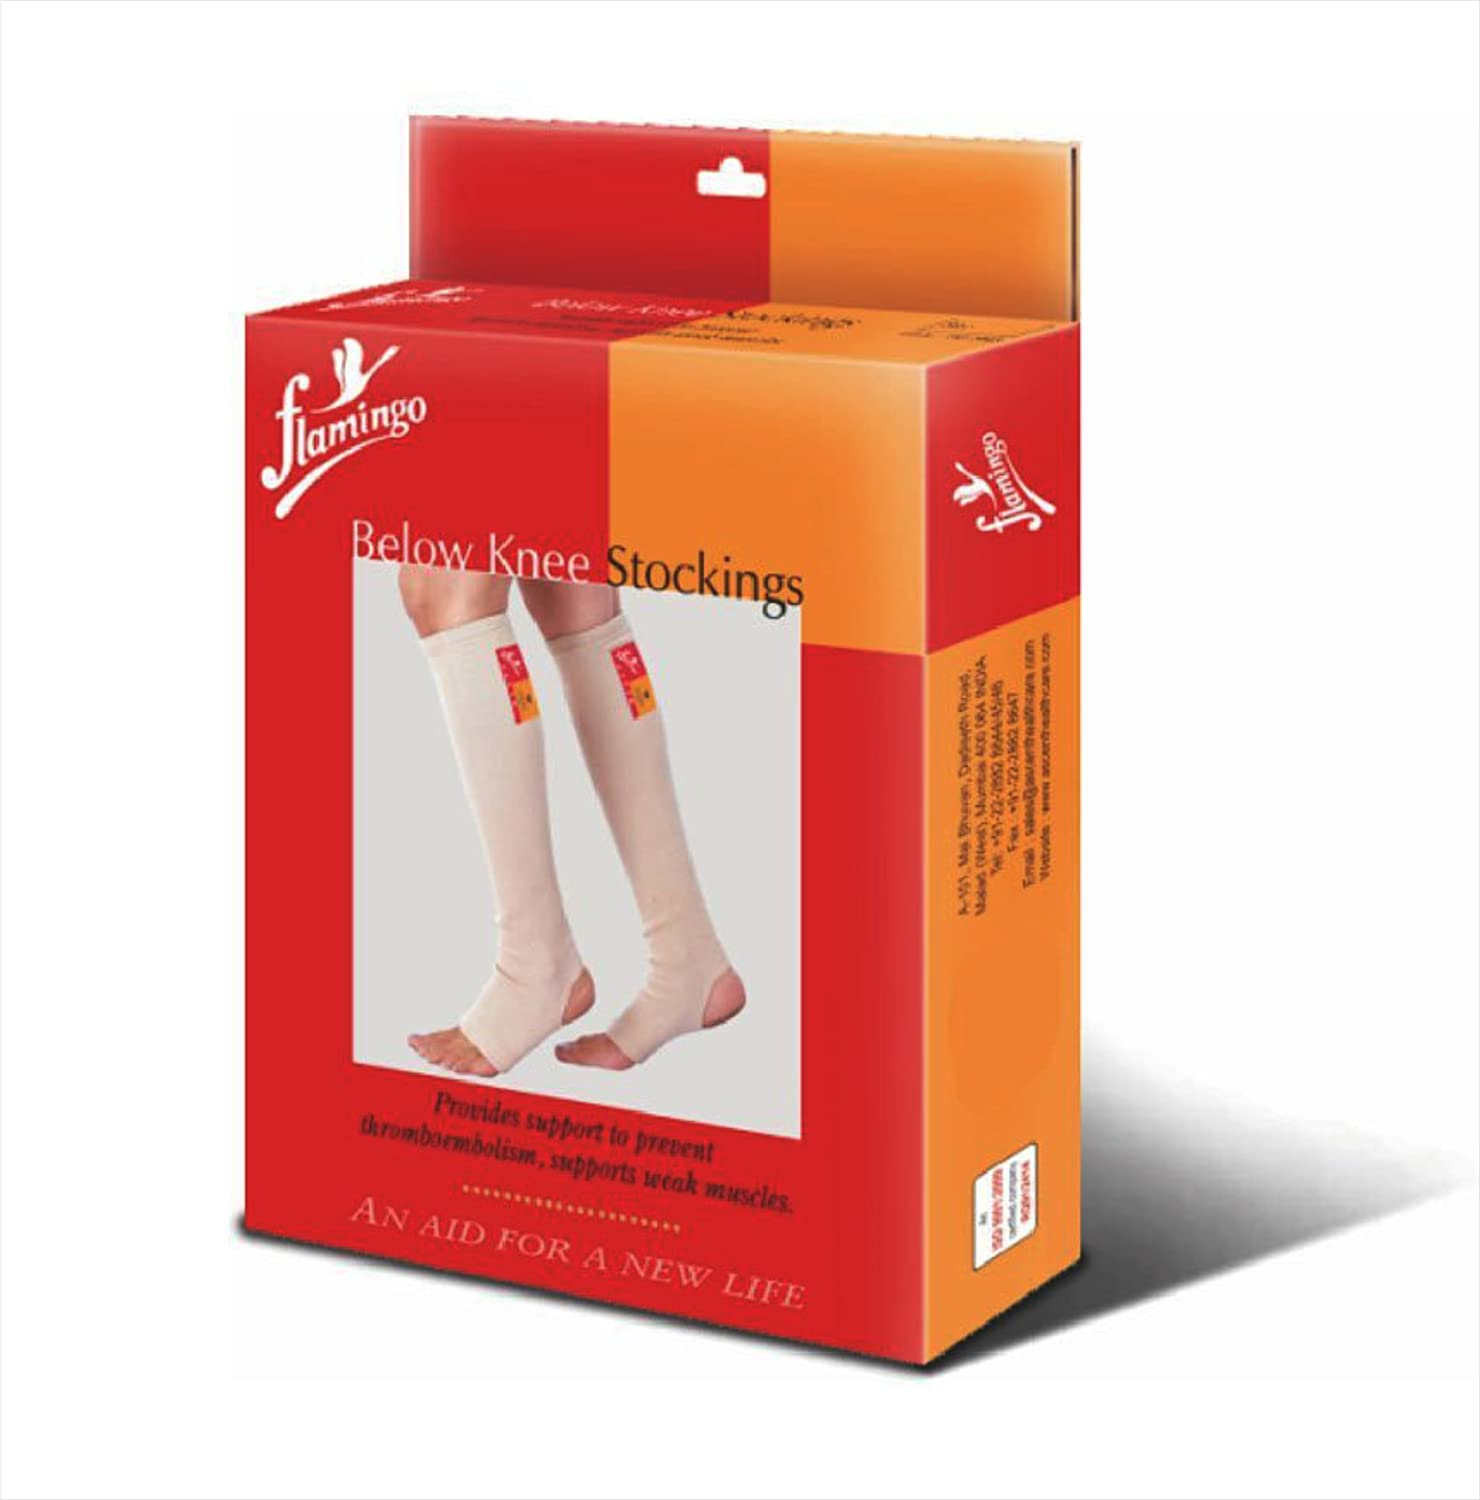 5ad6e16d1ec Buy Flamingo Compression Stocking Below Knee - Leg Socks To Reduce Pain    Swelling (Pack Of 1) Online at Low Prices in India - Amazon.in